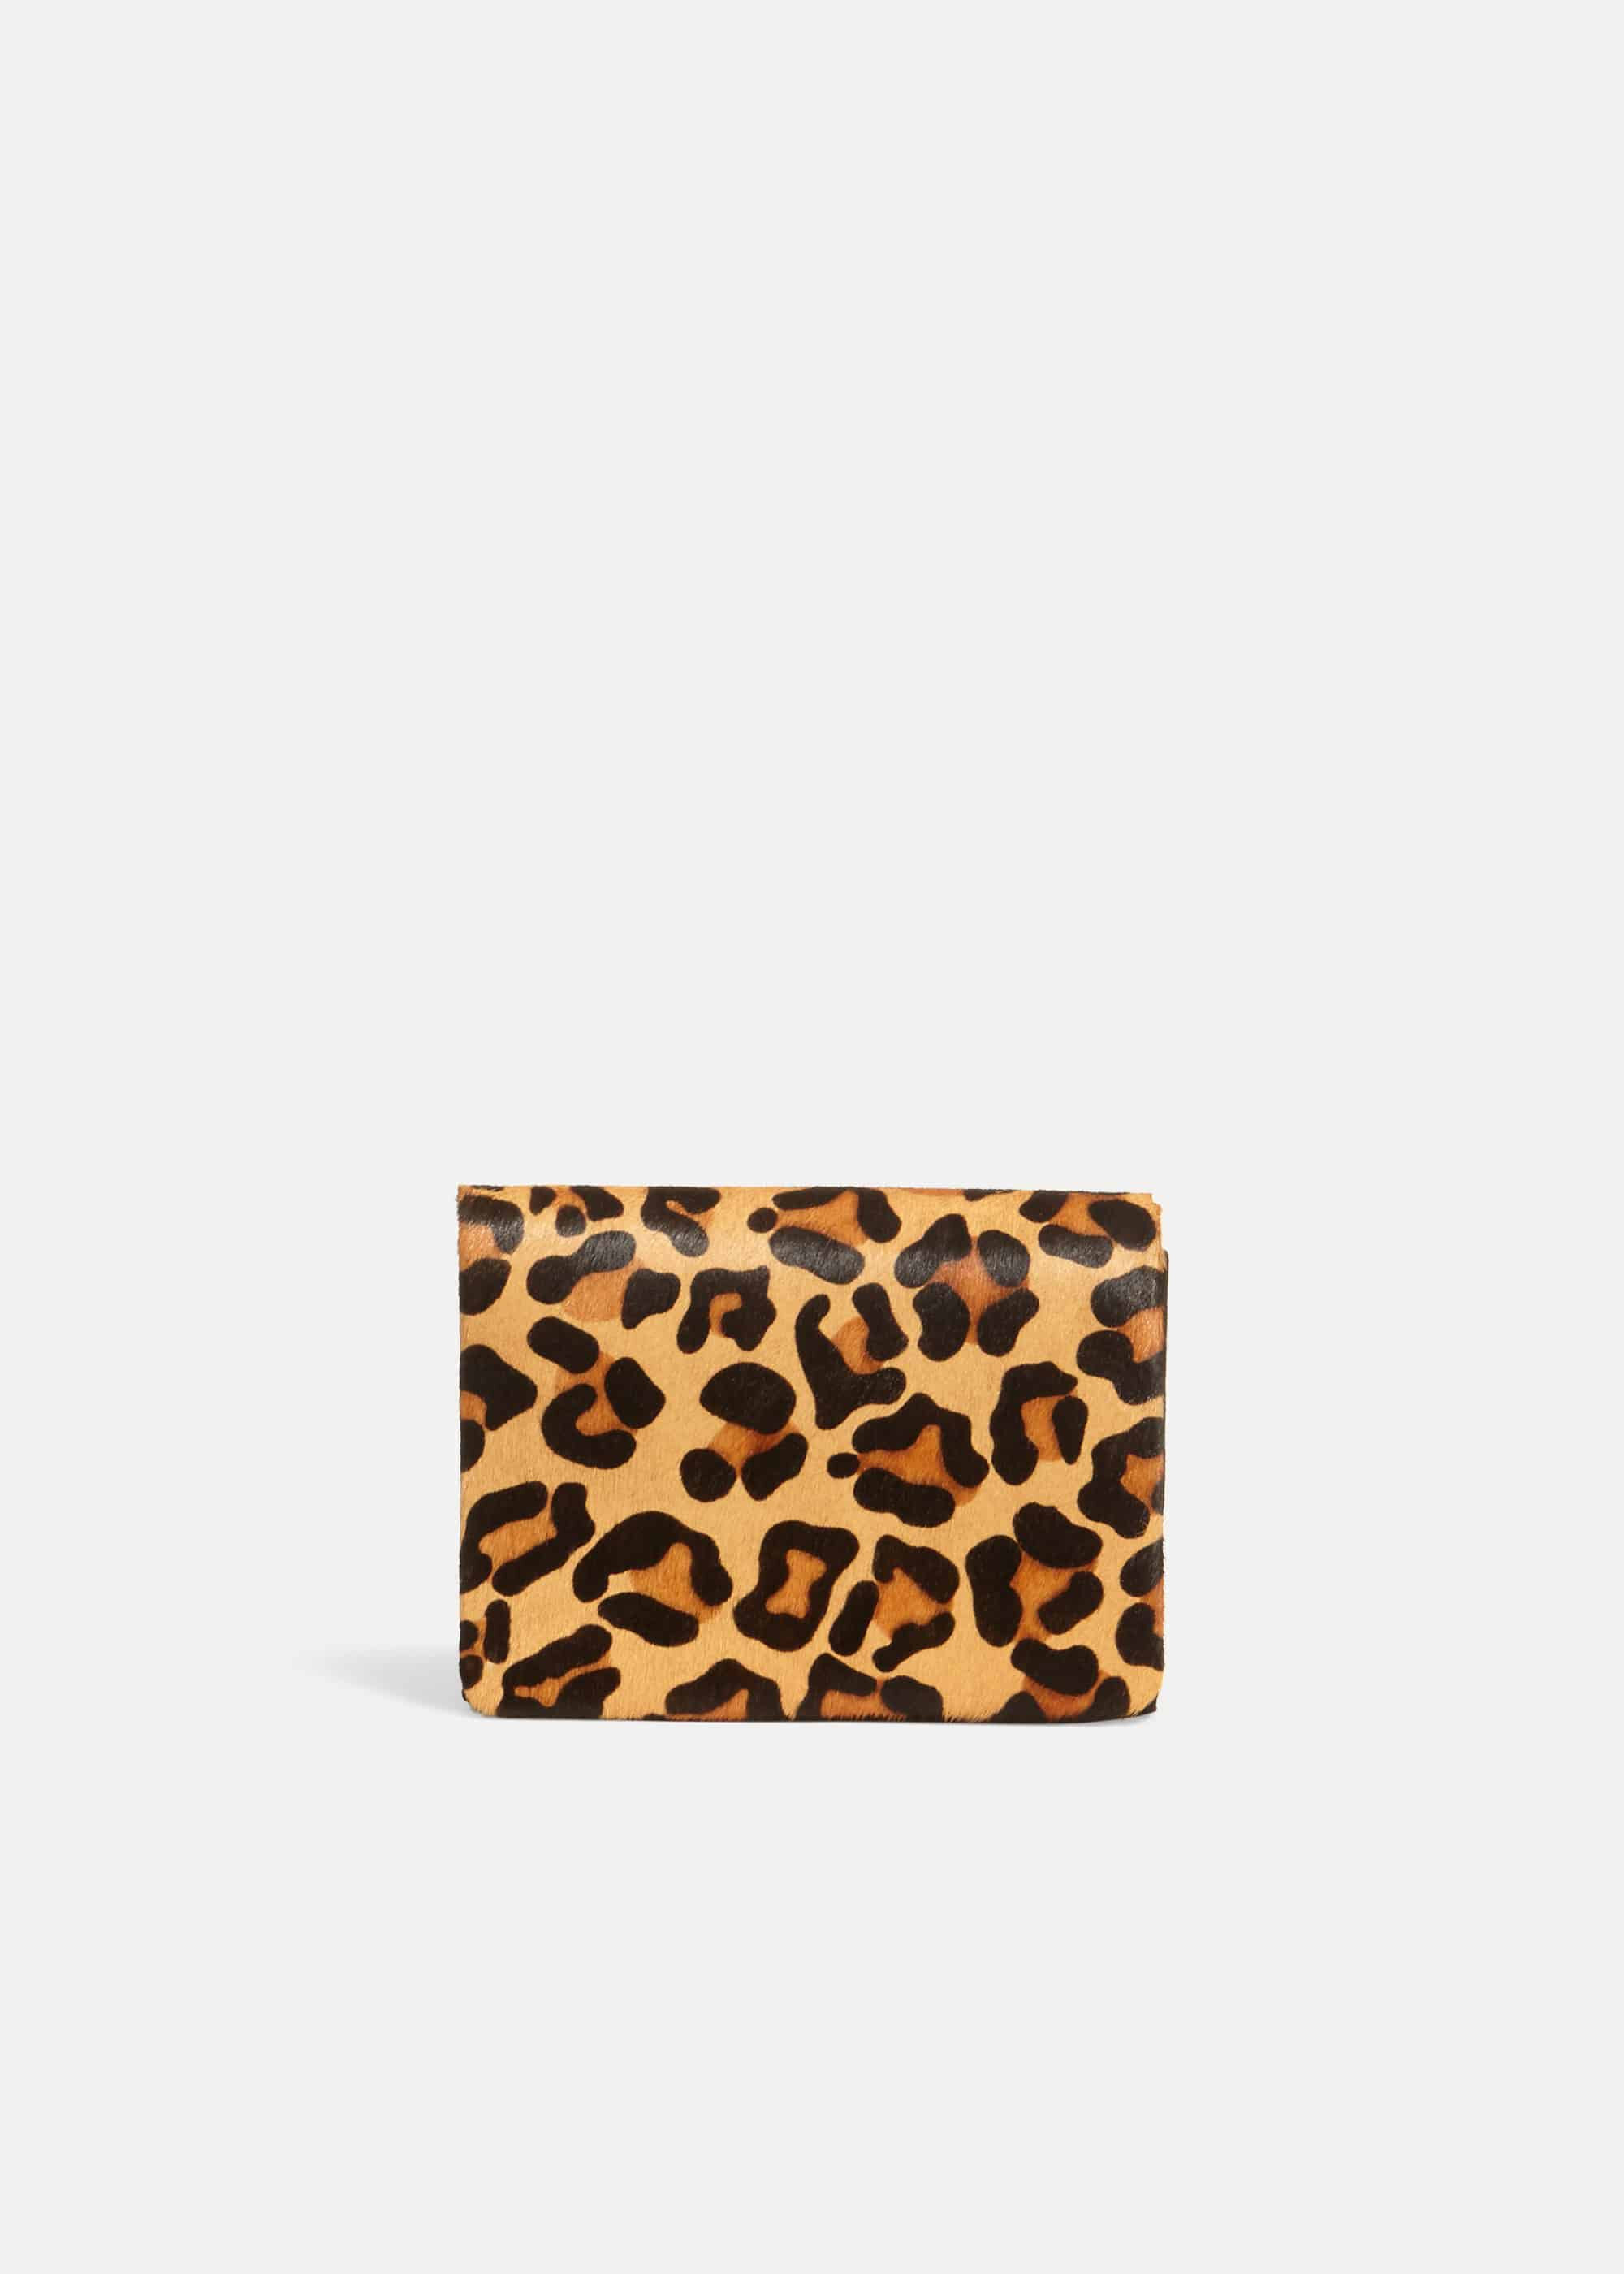 Phase Eight Lo Leopard Print Clutch, Multicoloured, Bag